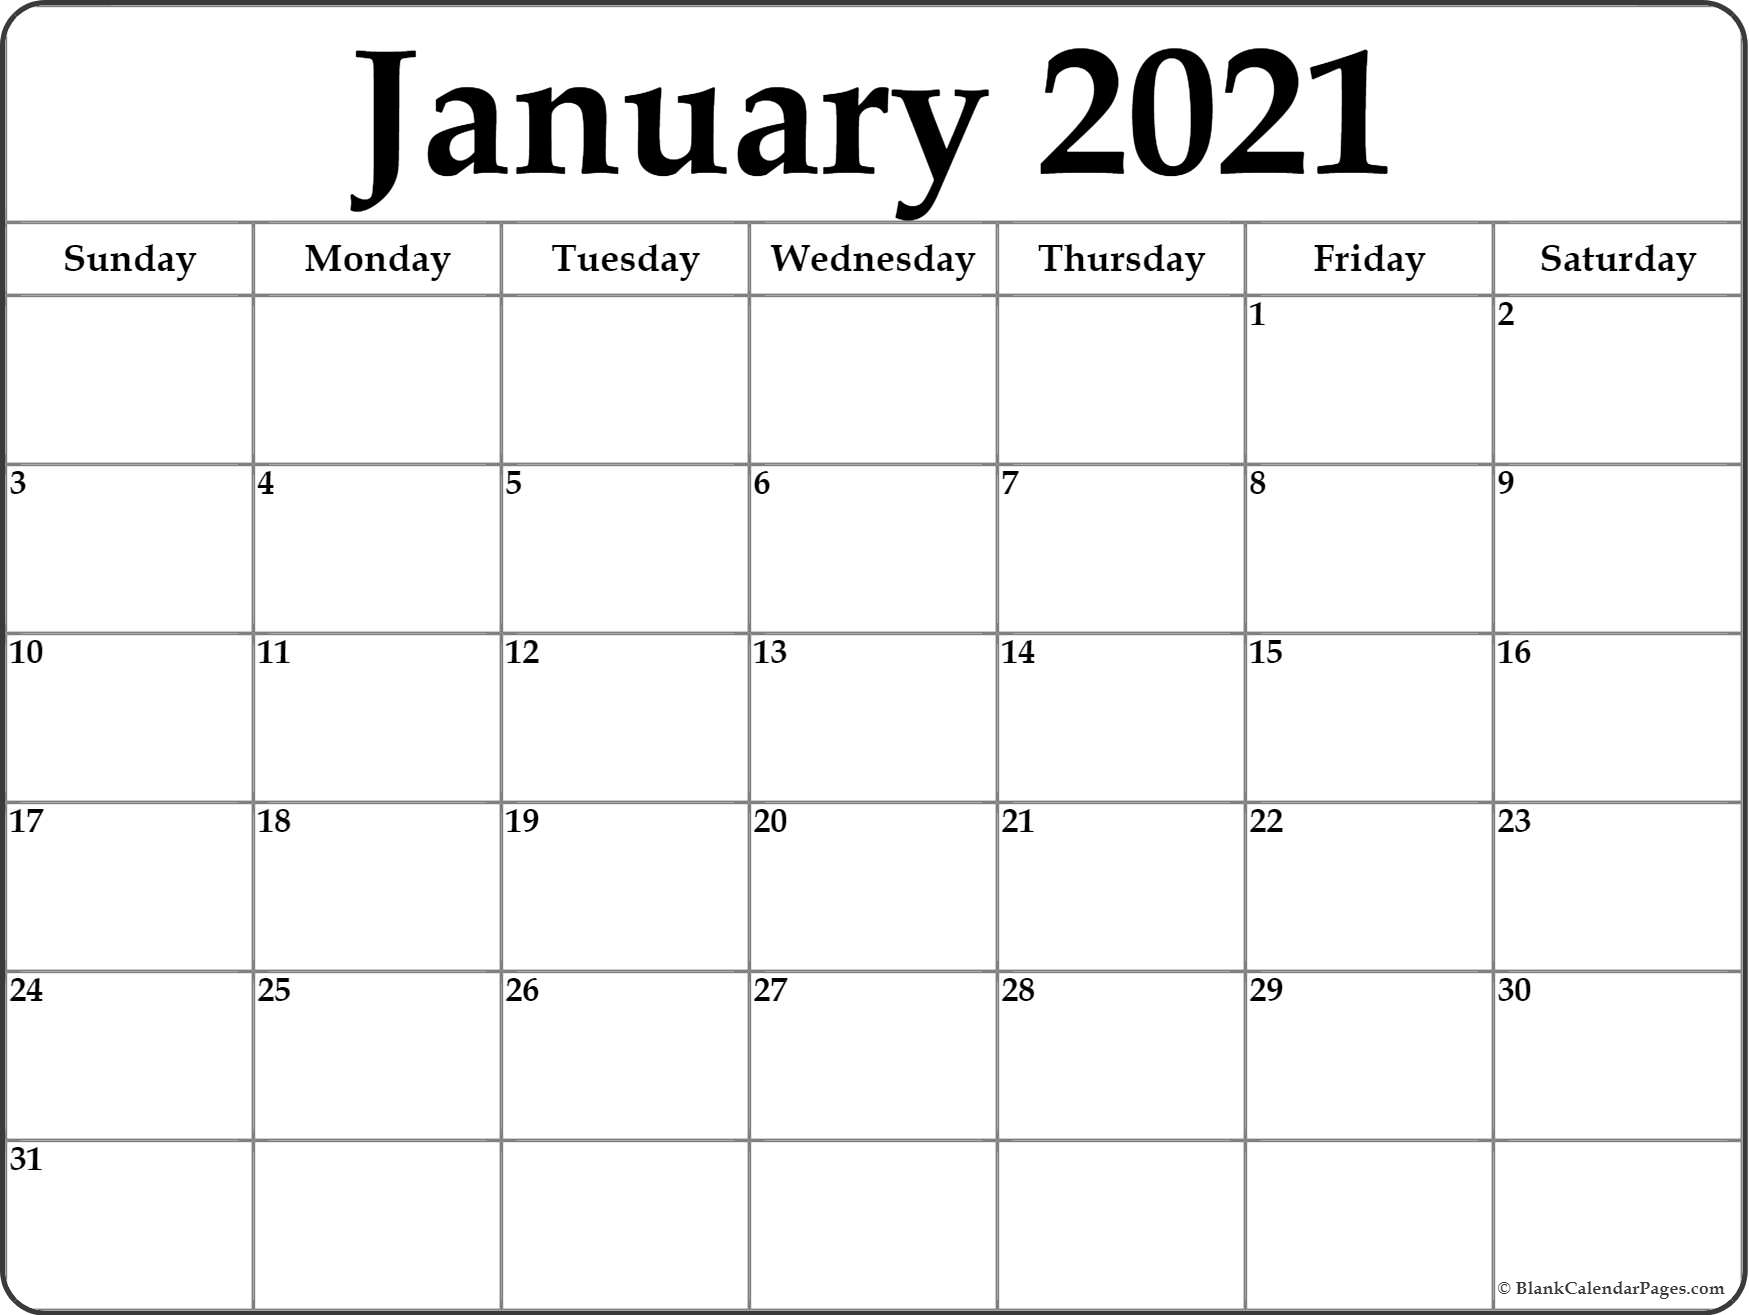 2021 Yearly Calendar With Boxes | Calendar Printables Free within Wv 2021 Rut